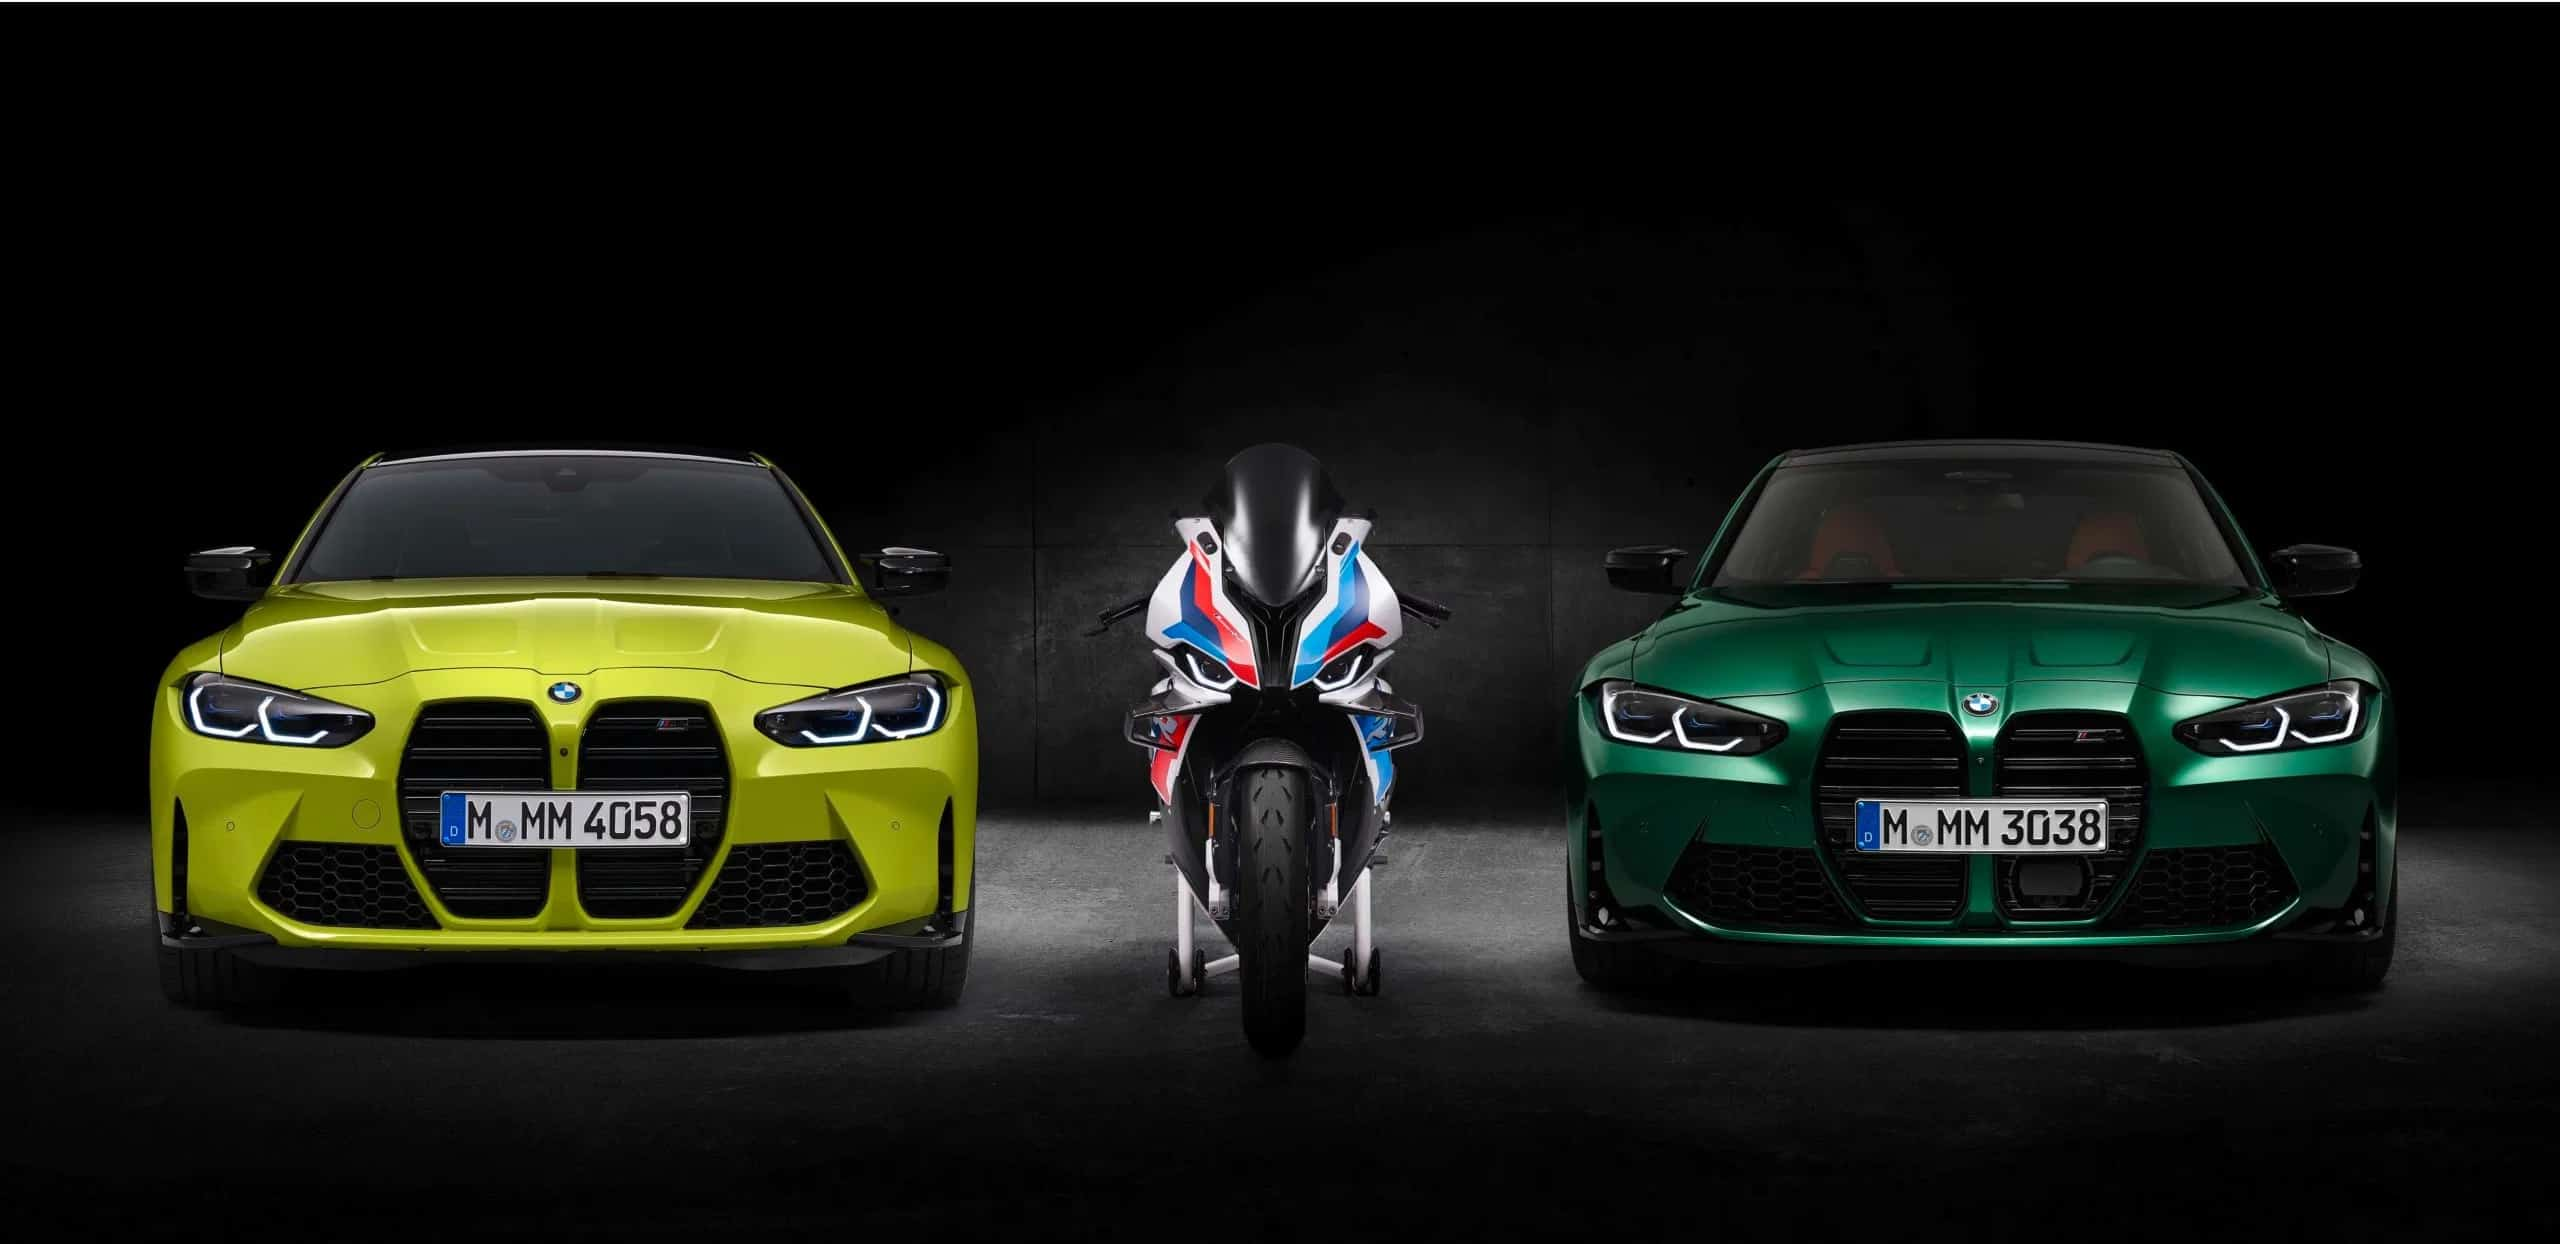 BMW M1000RR With M4 and M3